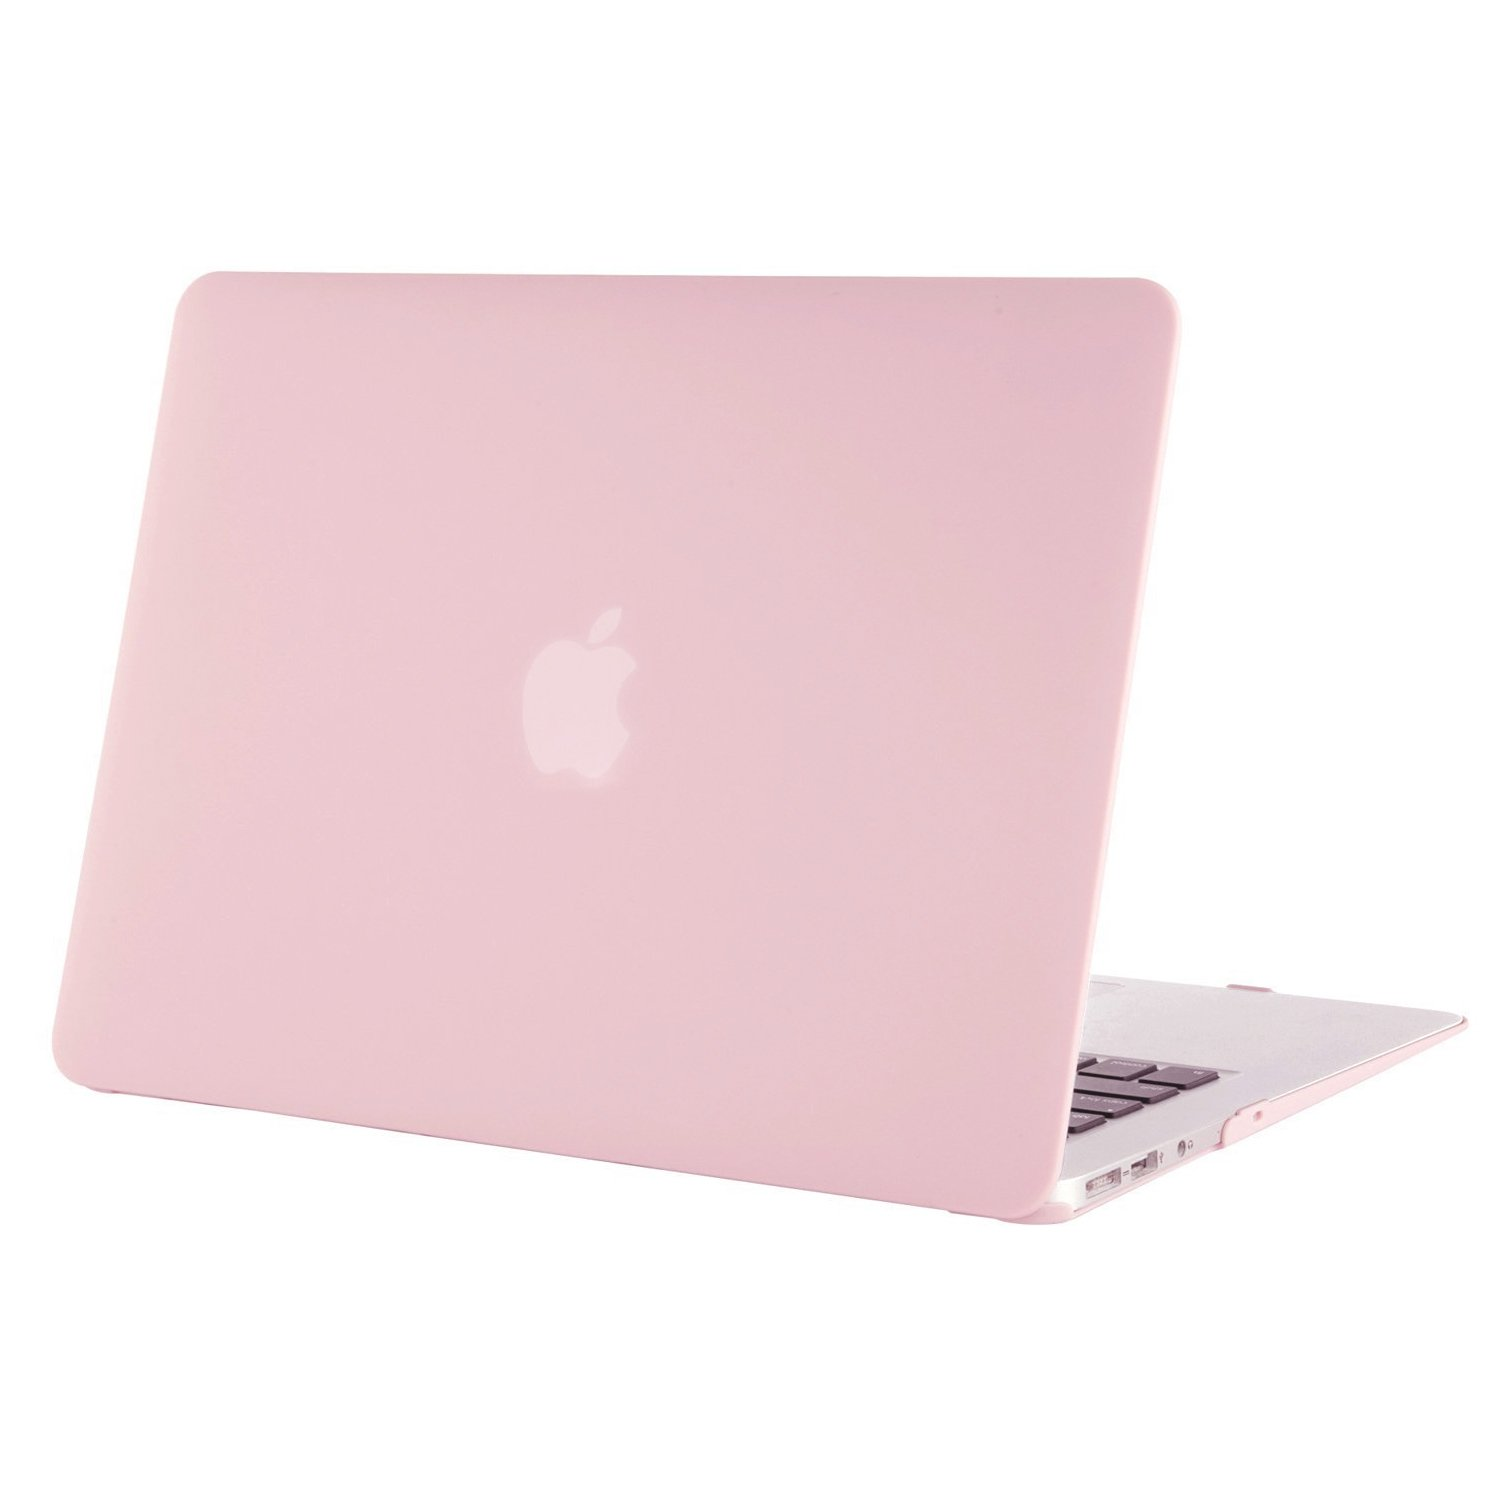 MOSISO Plastic Hard Shell Case Cover Compatible MacBook Air 13 Inch (Models: A1369 and A1466), Rose Quartz